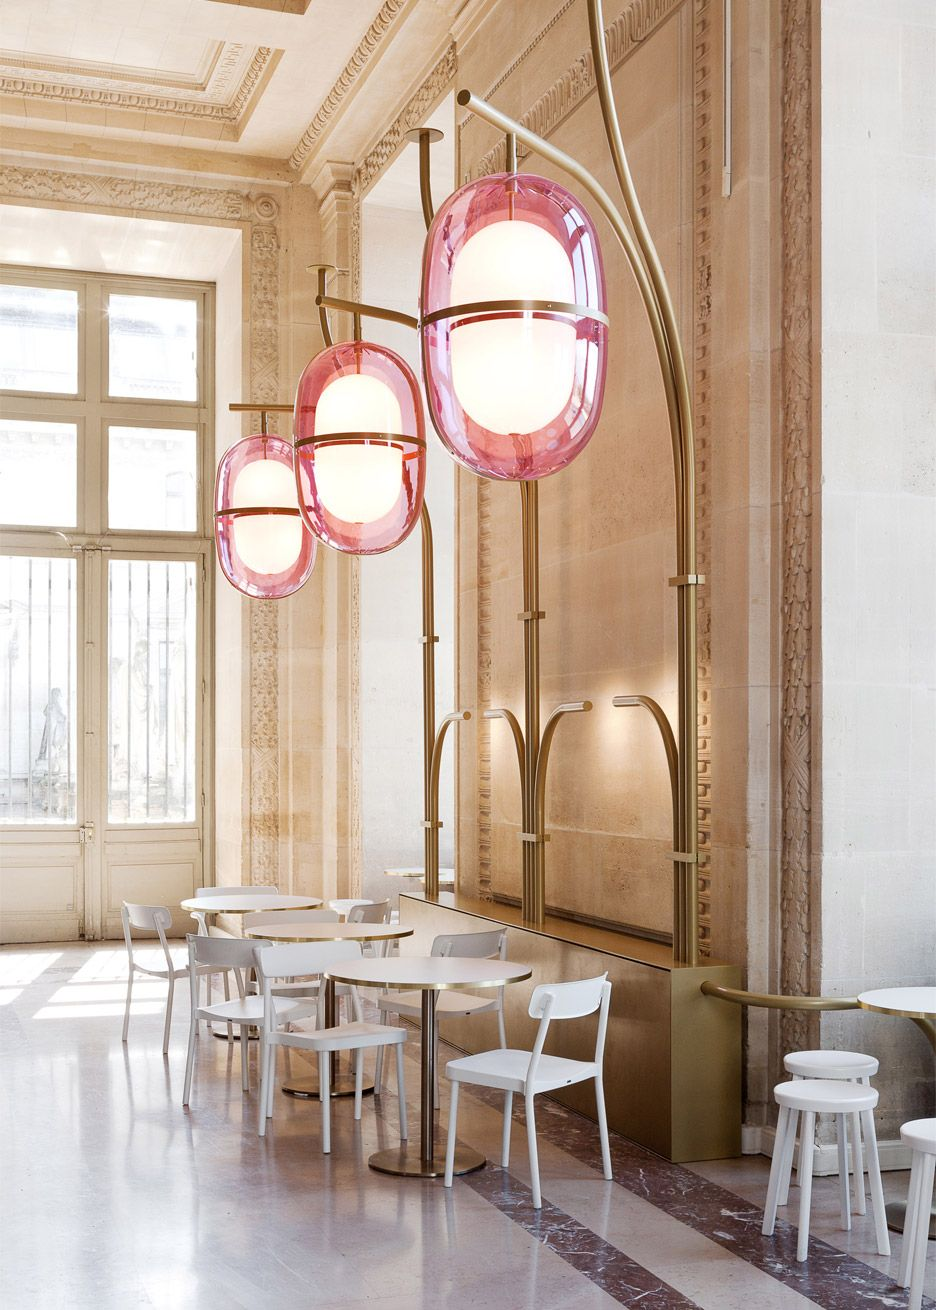 French designer Mathieu Lehanneur has renovated a cafe inside the Louvre in Paris, adding modern pink acrylic light fixtures that contrast with their historical surrounds